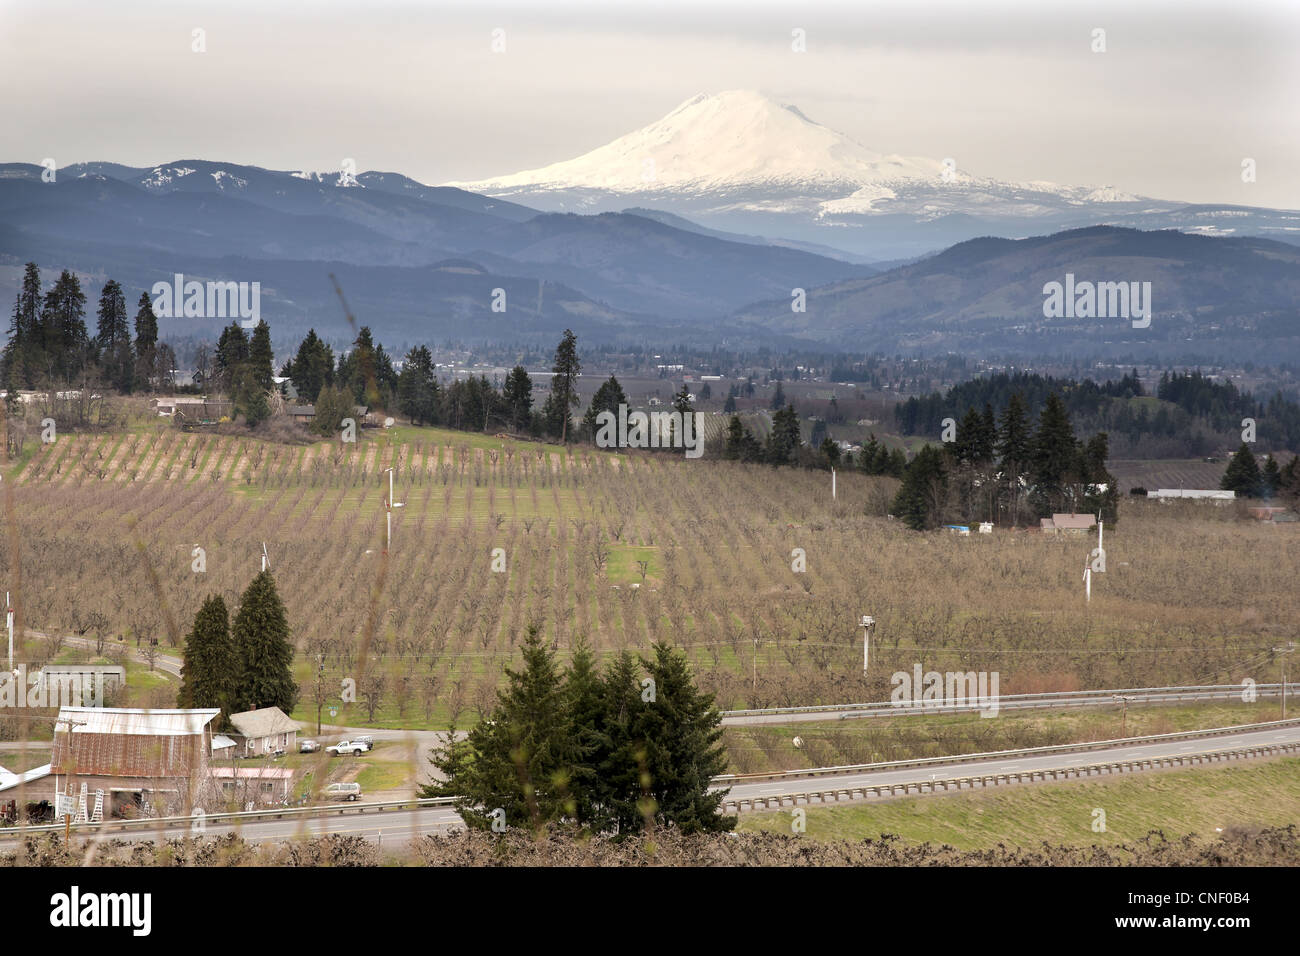 Pear Orchards in Hood River Oregon with Mount Adams - Stock Image